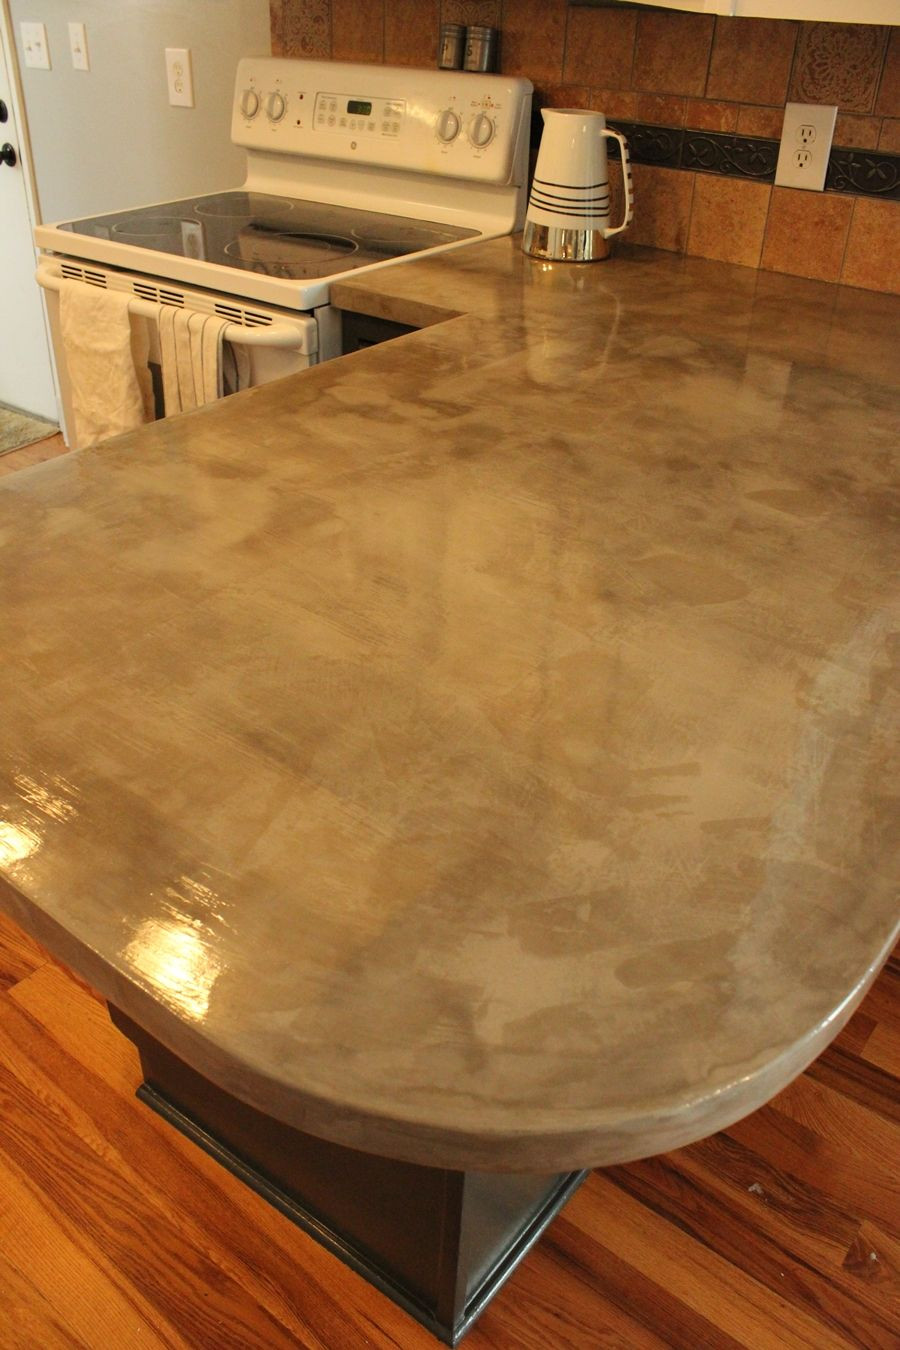 Best ideas about DIY Concrete Kitchen Countertop . Save or Pin DIY Concrete Kitchen Countertops A Step by Step Tutorial Now.